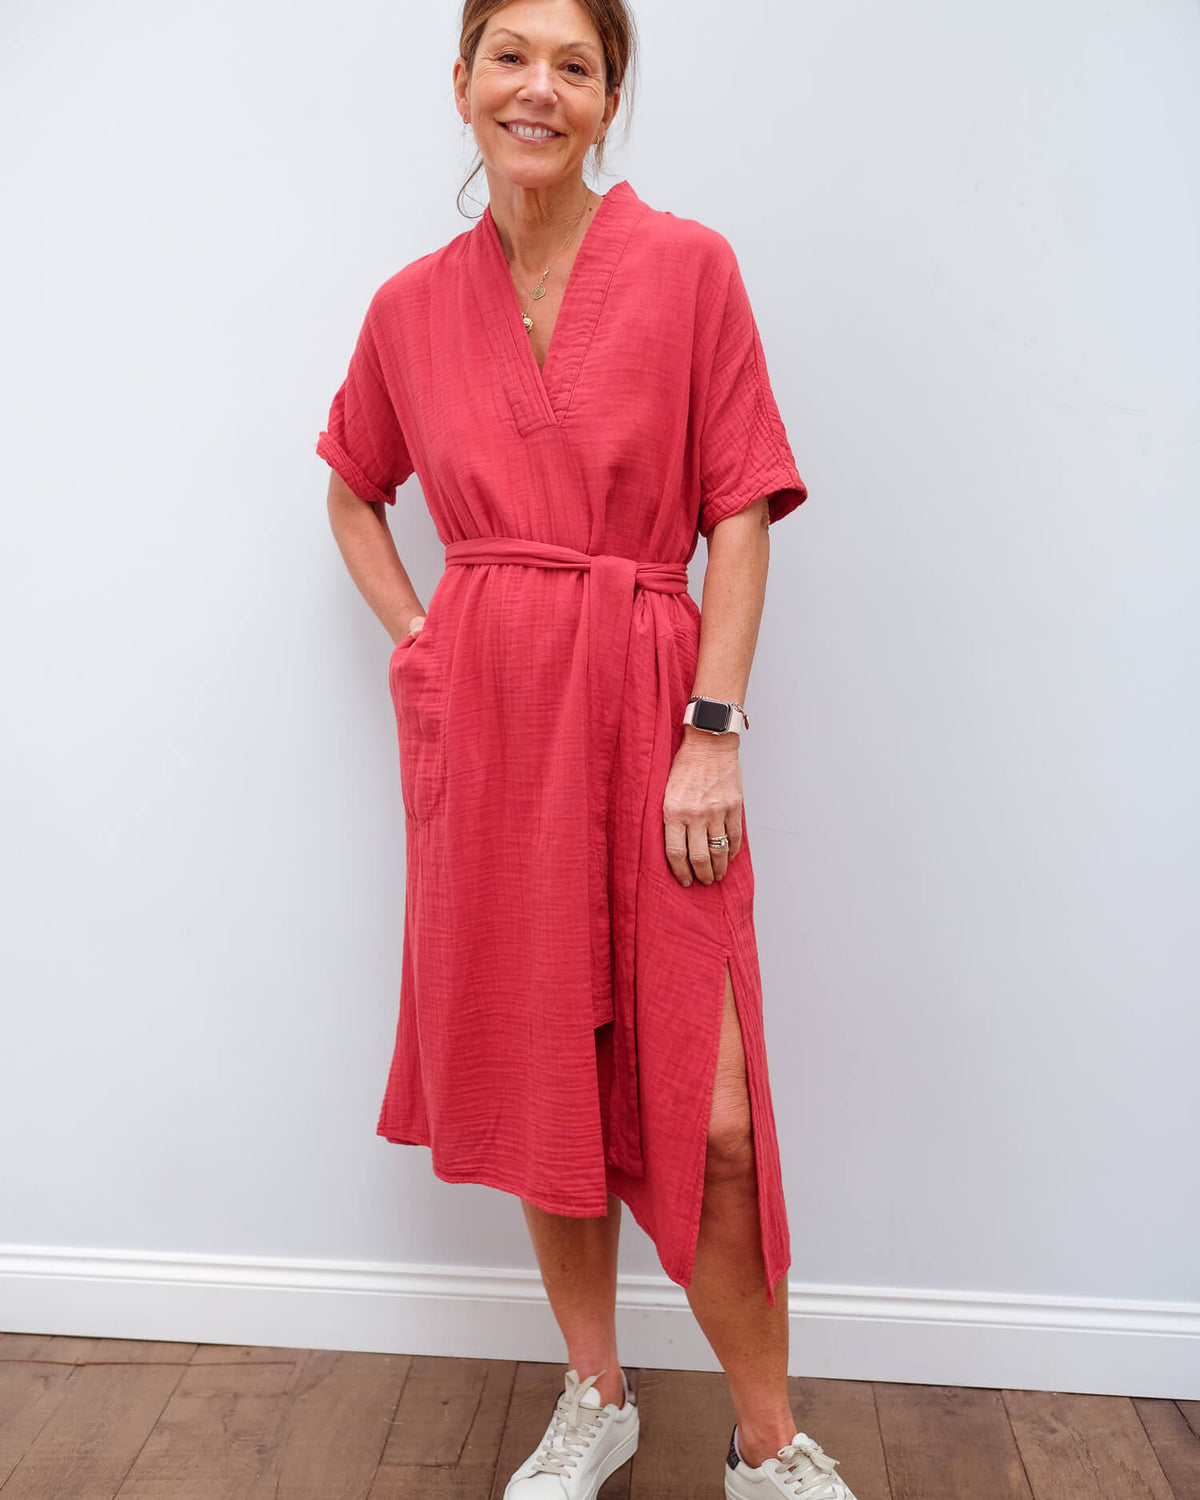 V Kerry dress in crayon